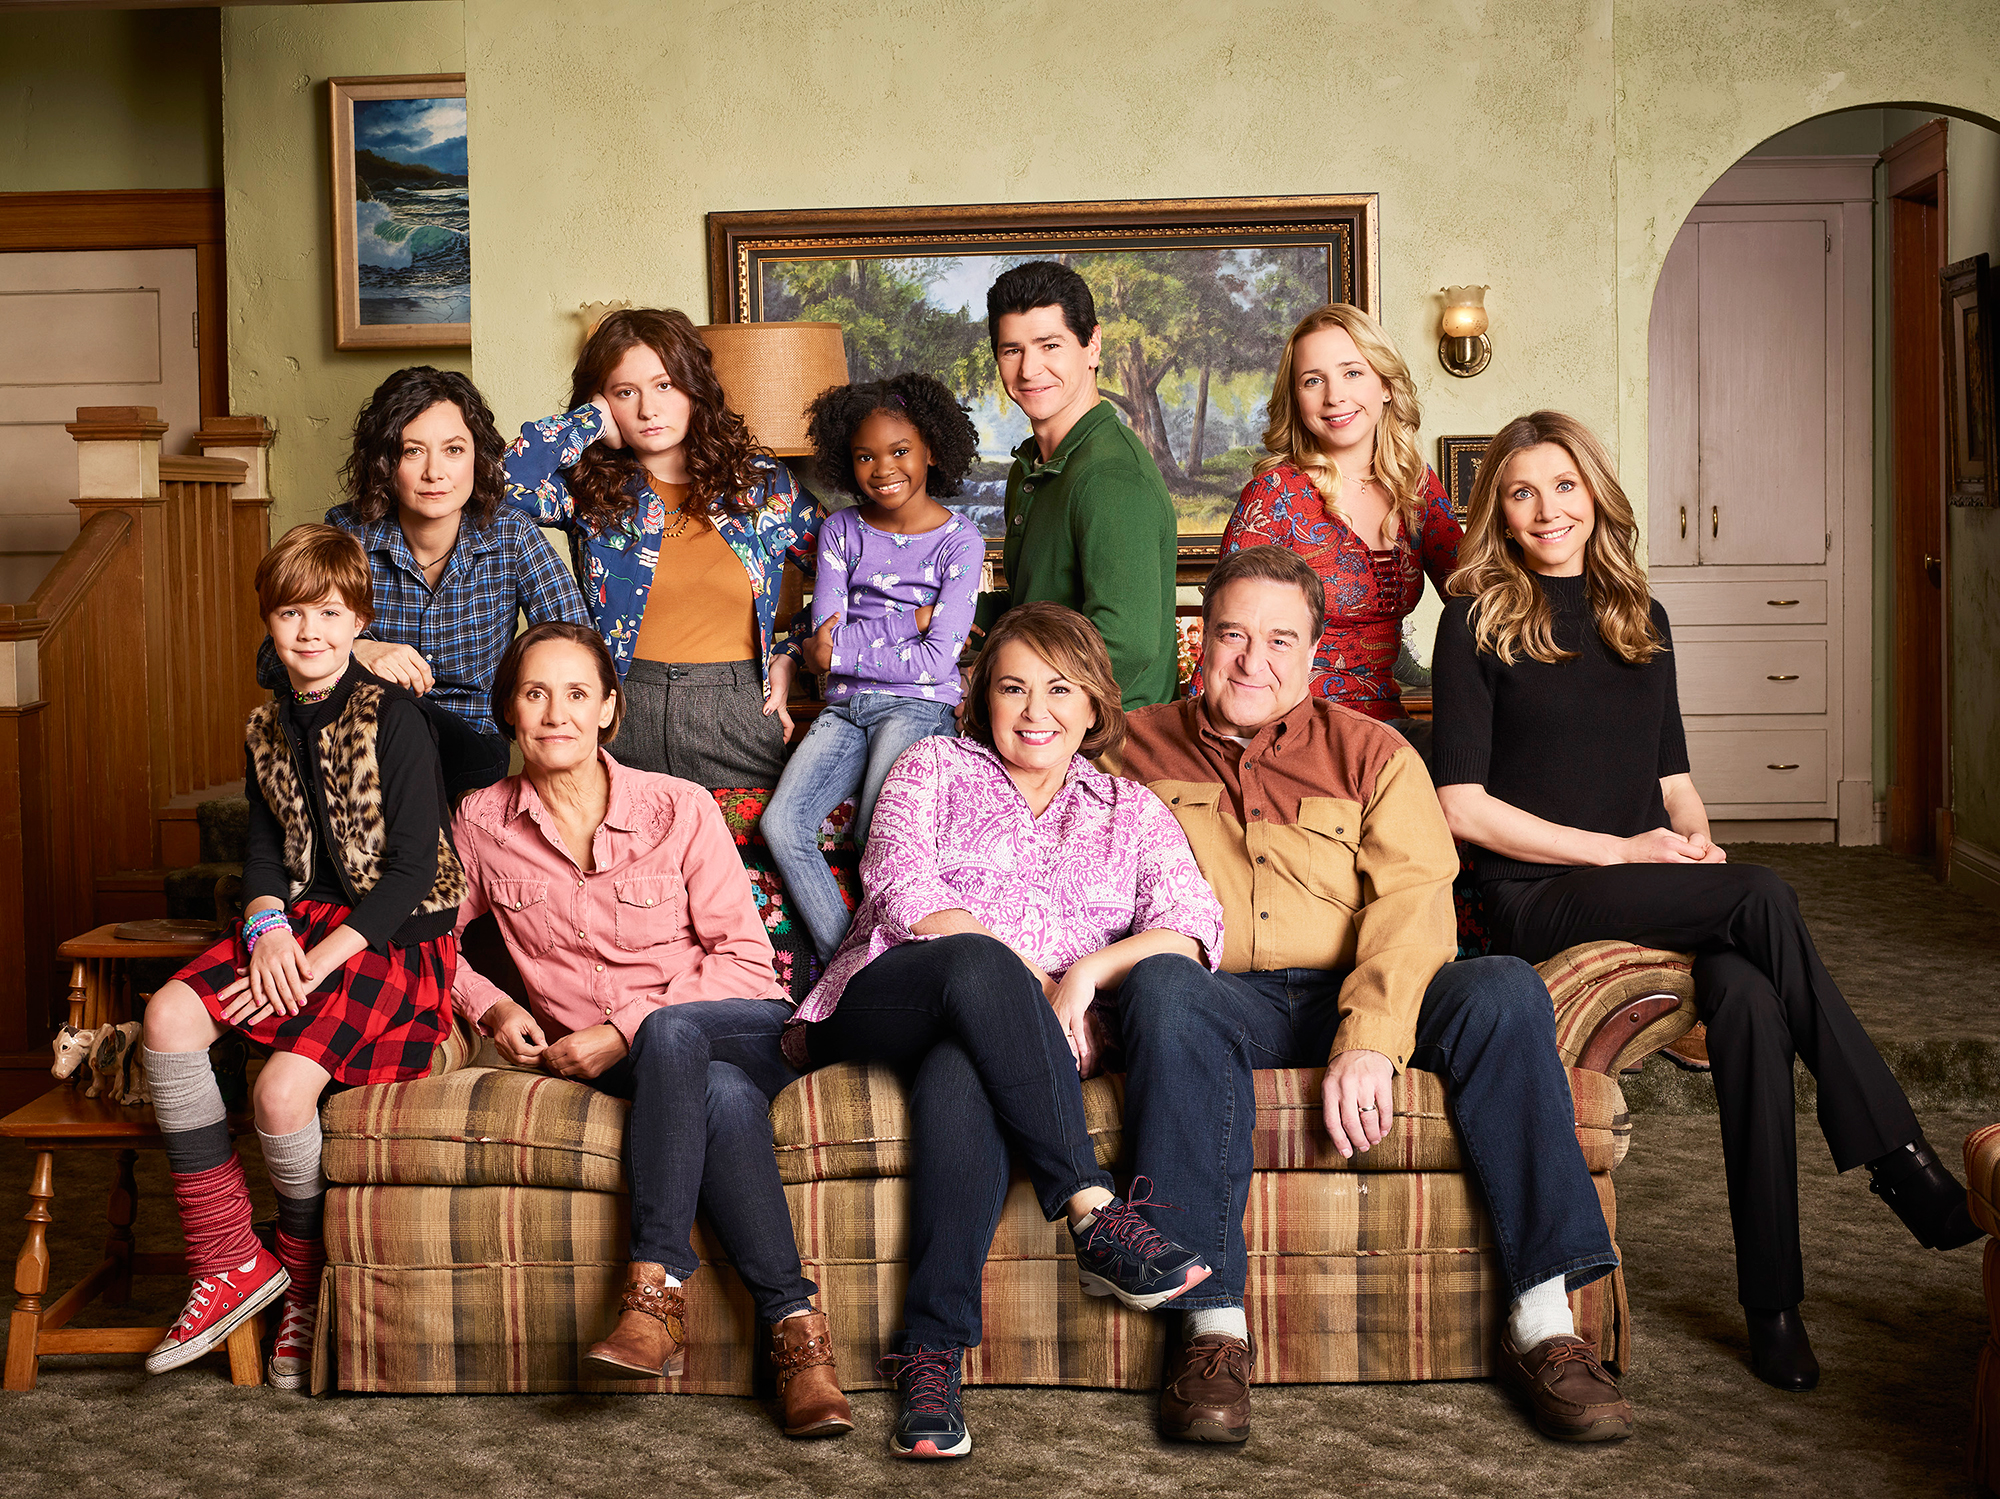 The premiere of the Roseanne revival scored massive ratings, despite controversy